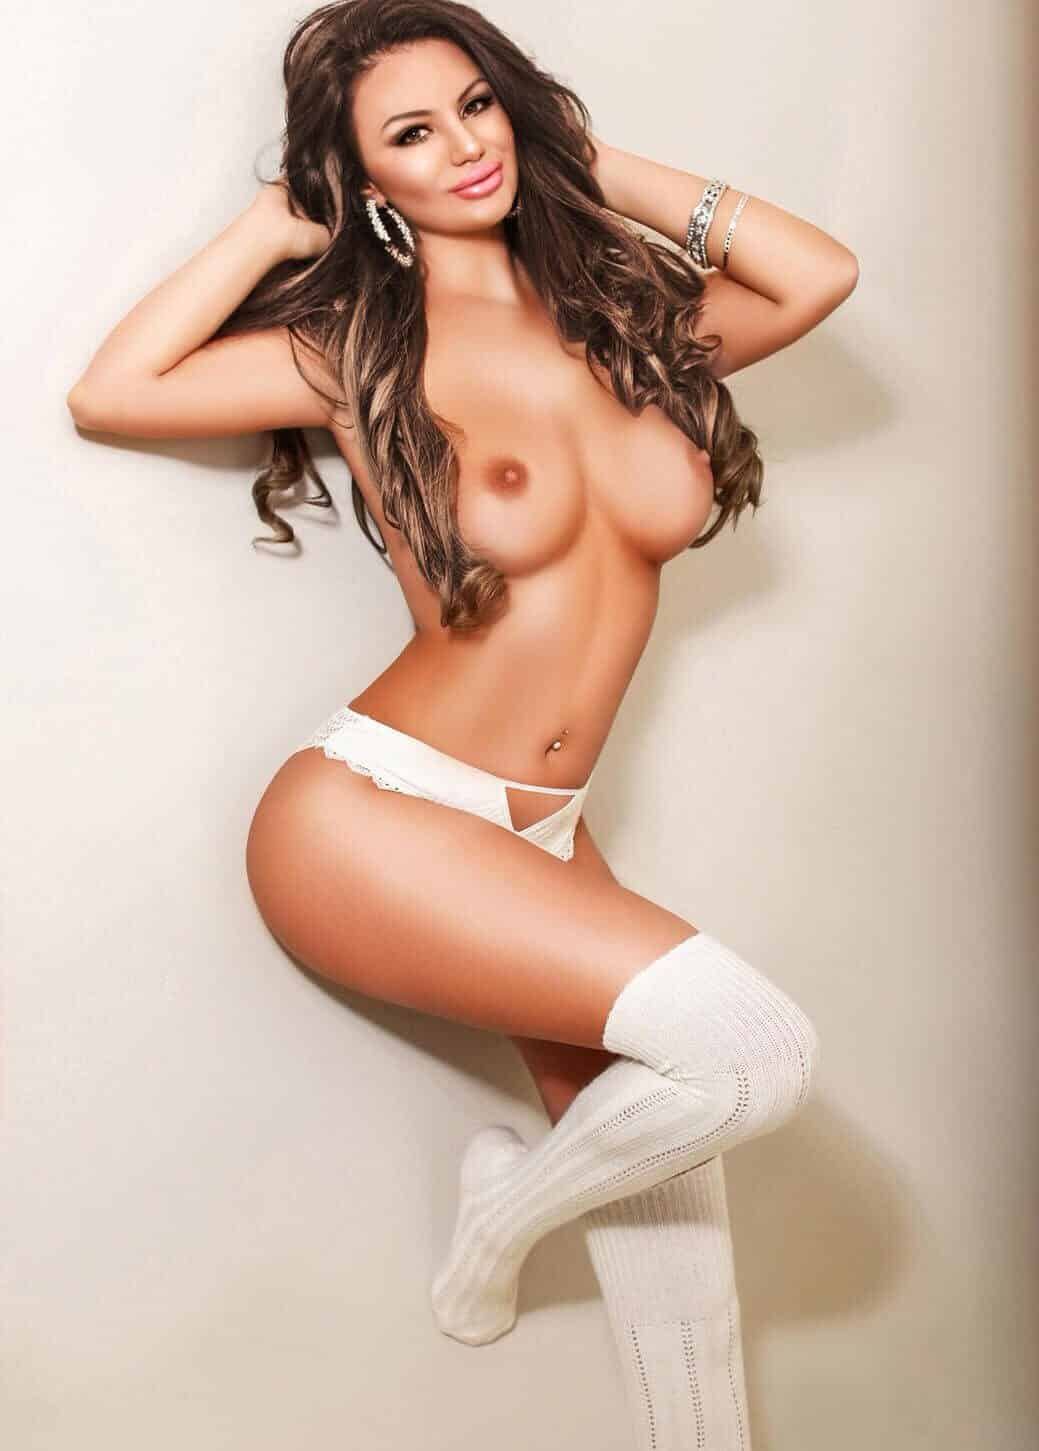 Bayswater Escort Jenny from Eastern Europe